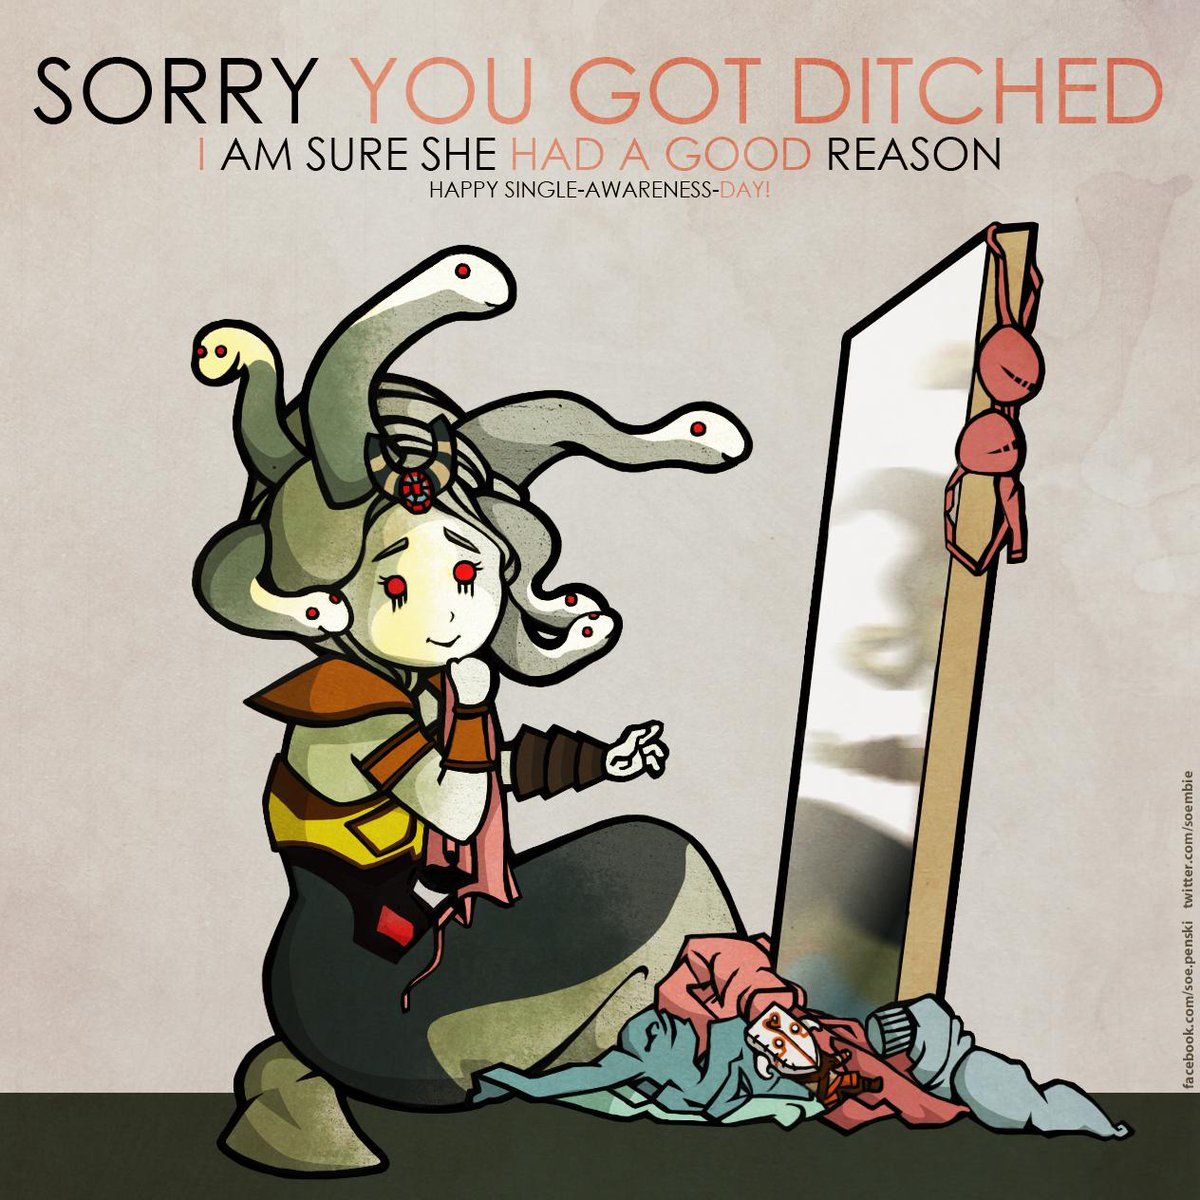 Happy Valentines/Single-Awareness-Day everyone! I made a card for the occasion. #Rubbingitin #dota2 #sorrybro http://t.co/nElC2y5c4M